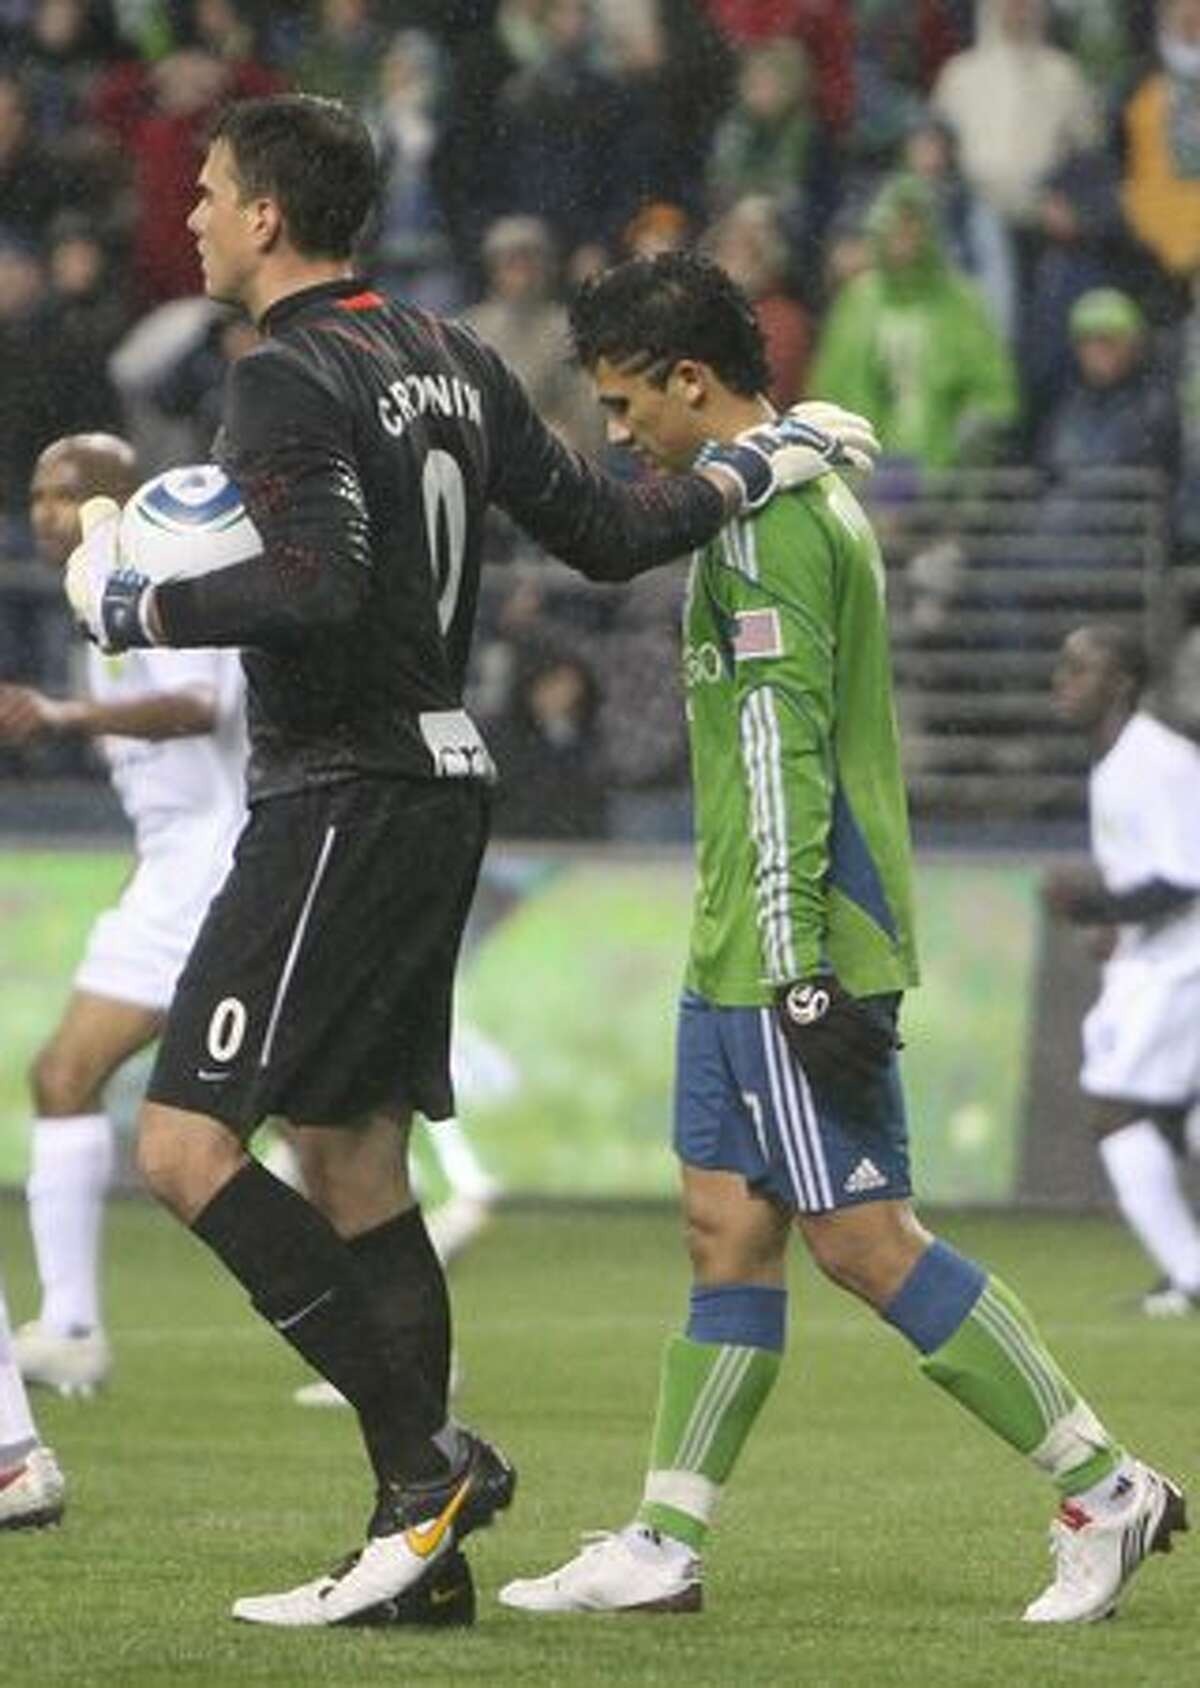 After blocking his shot, Portland Timbers goalie Steve Cronin consoles Fredy Montero of the Seattle Sounders in the second half of a preseason match on March 11, 2010 at Qwest Field in Seattle.